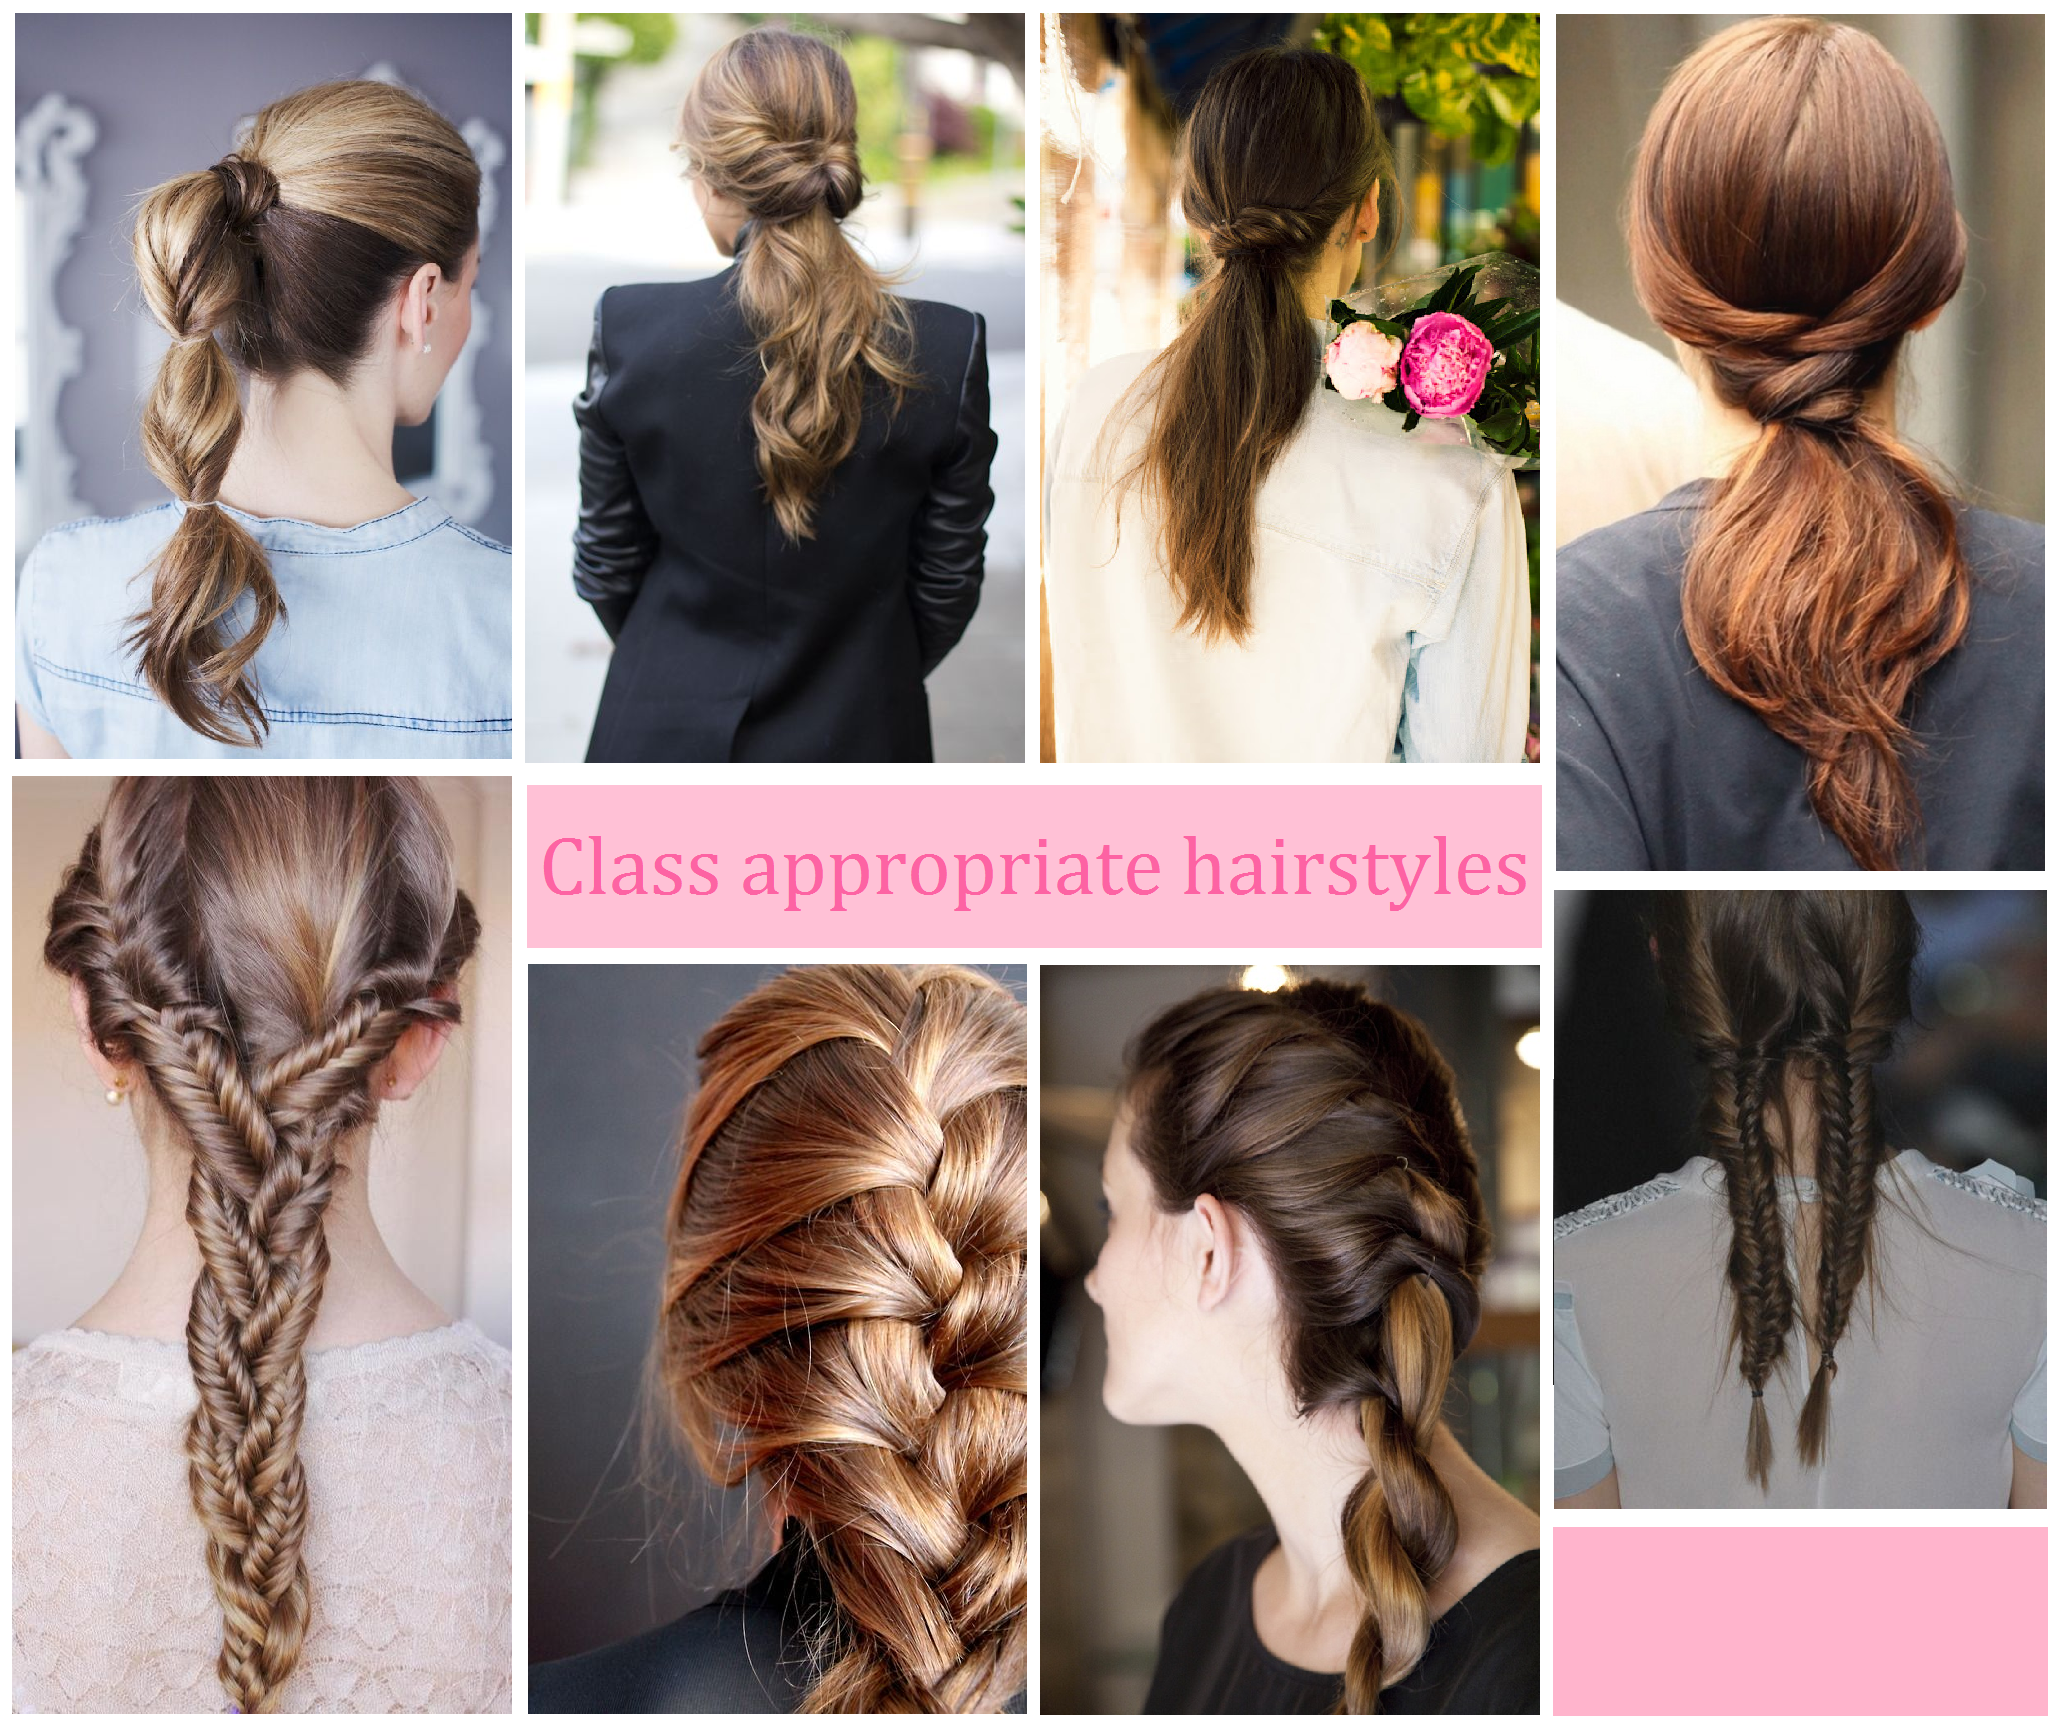 hair styles for school | hair styles | girls school